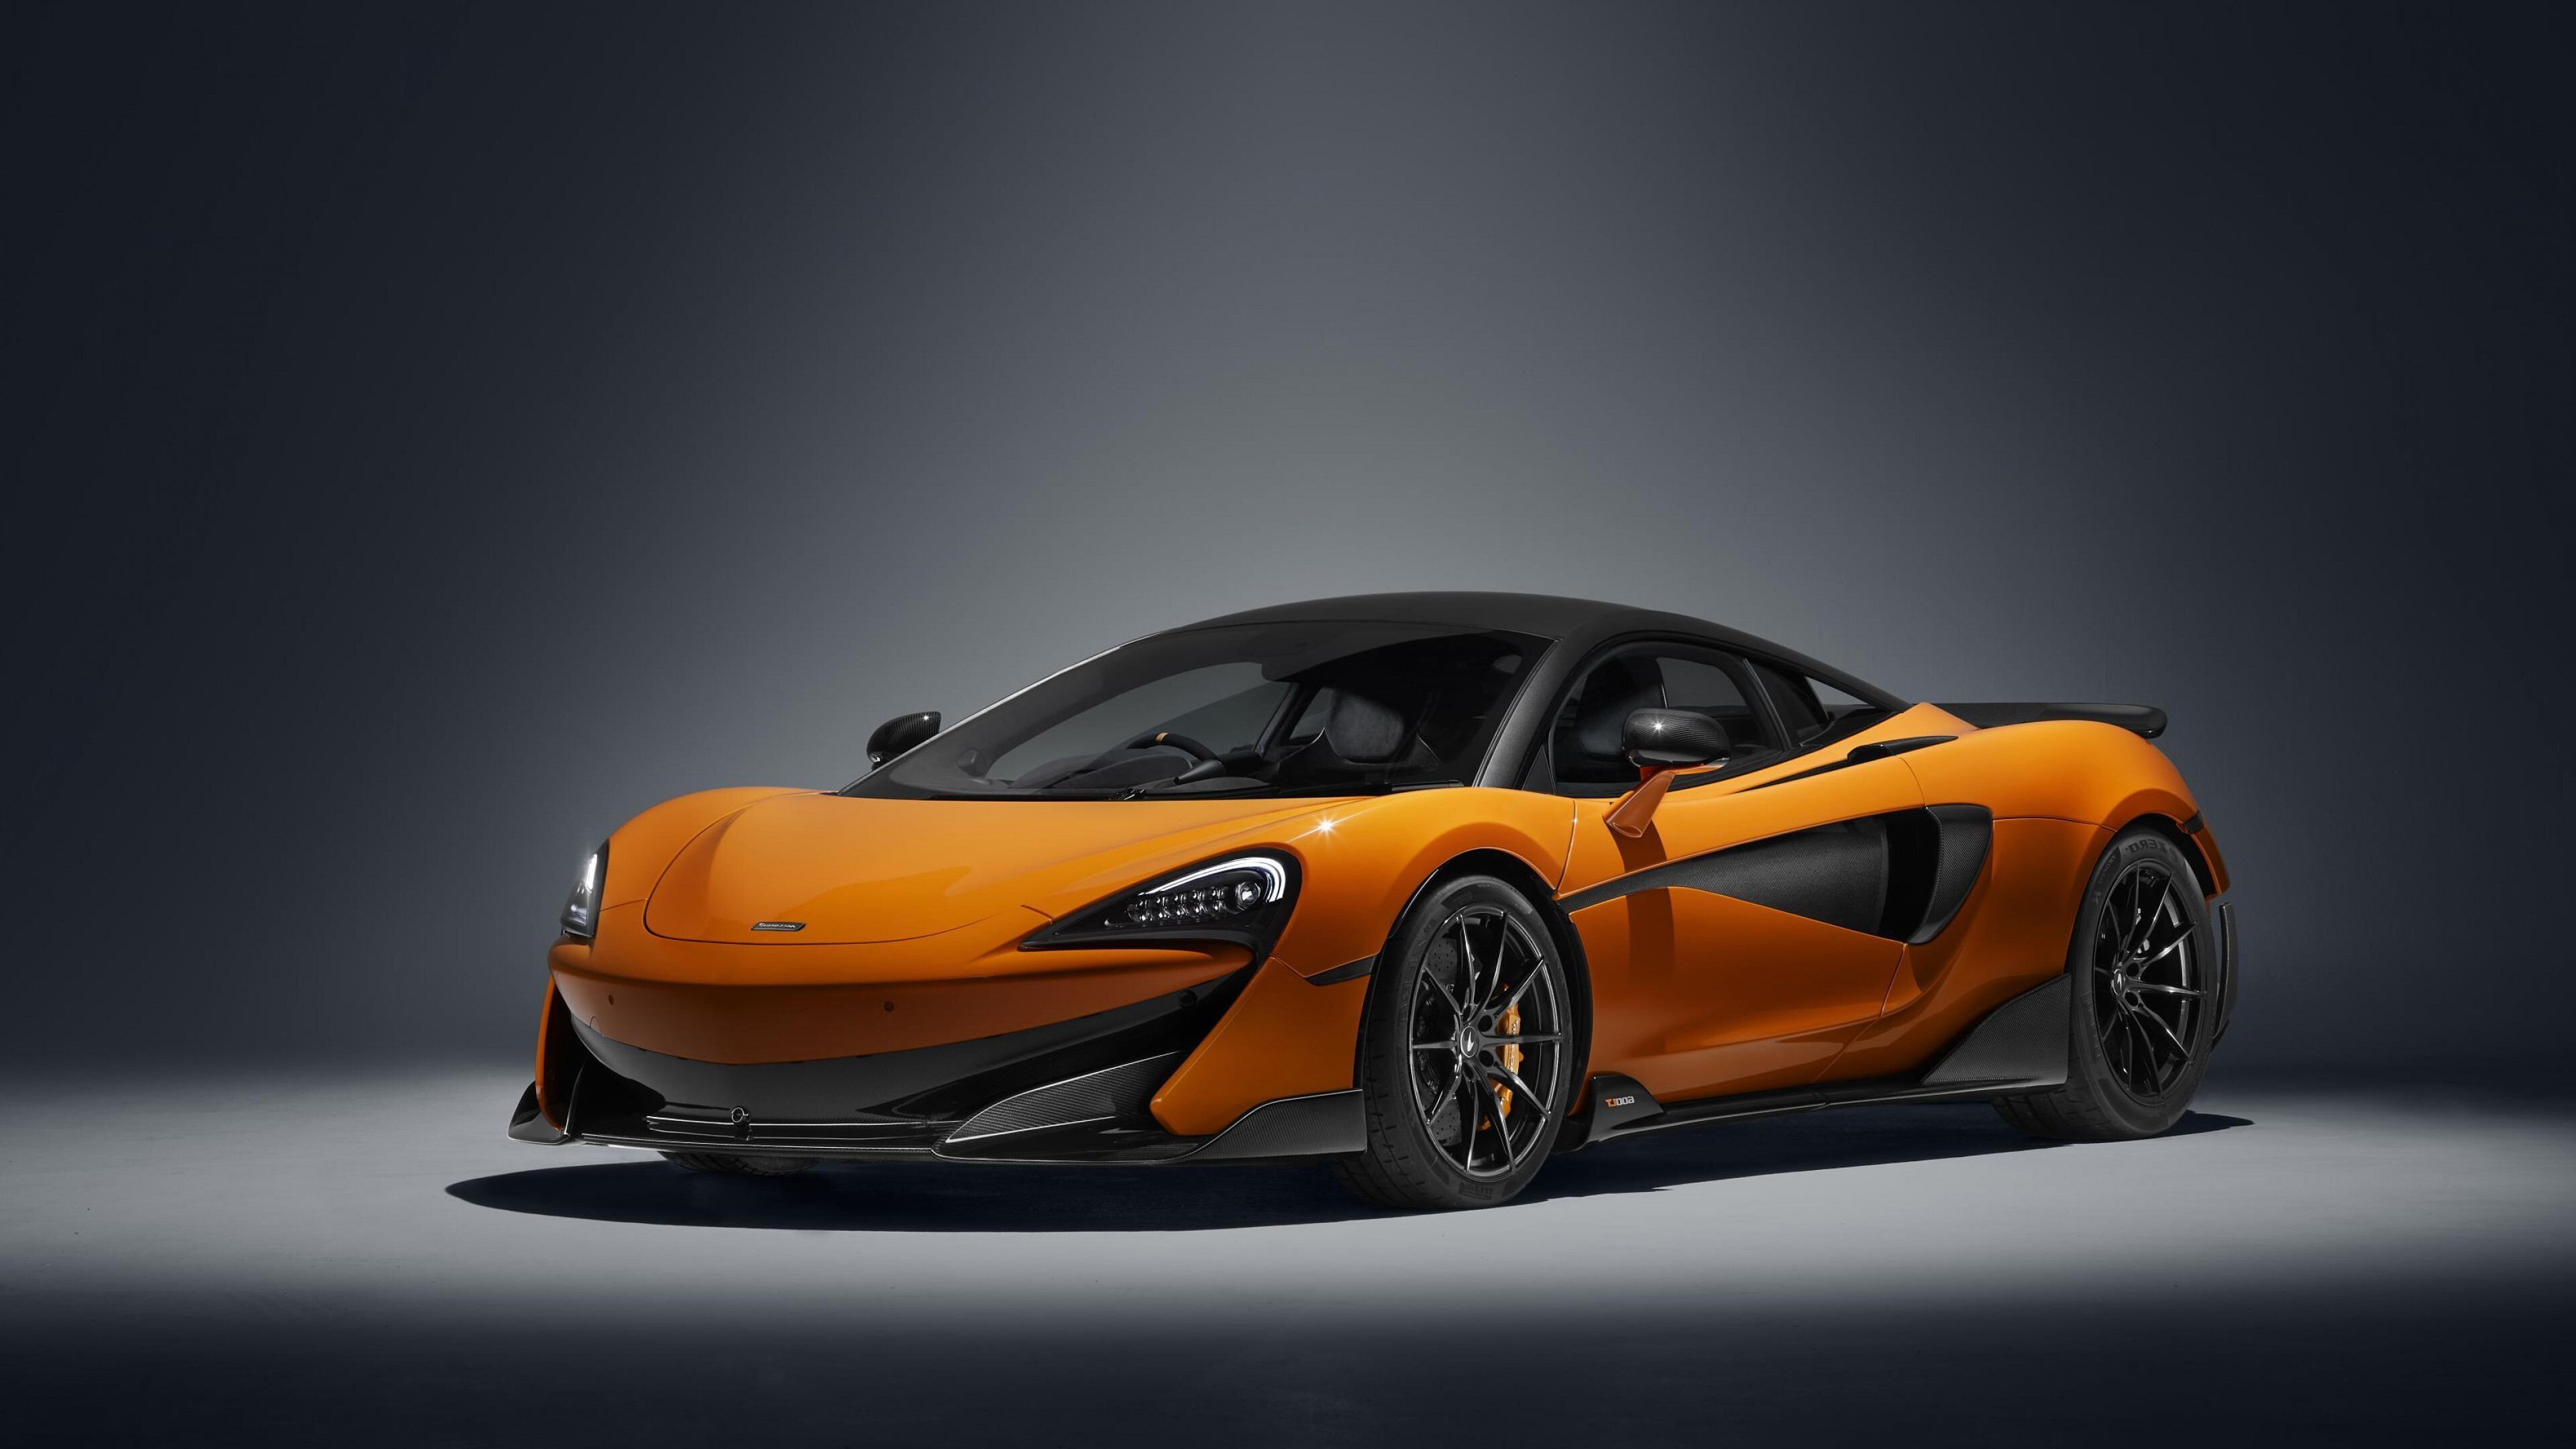 4k Wallpaper Of 2019 Mclaren 600lt Race Track Car Hd Wallpapers